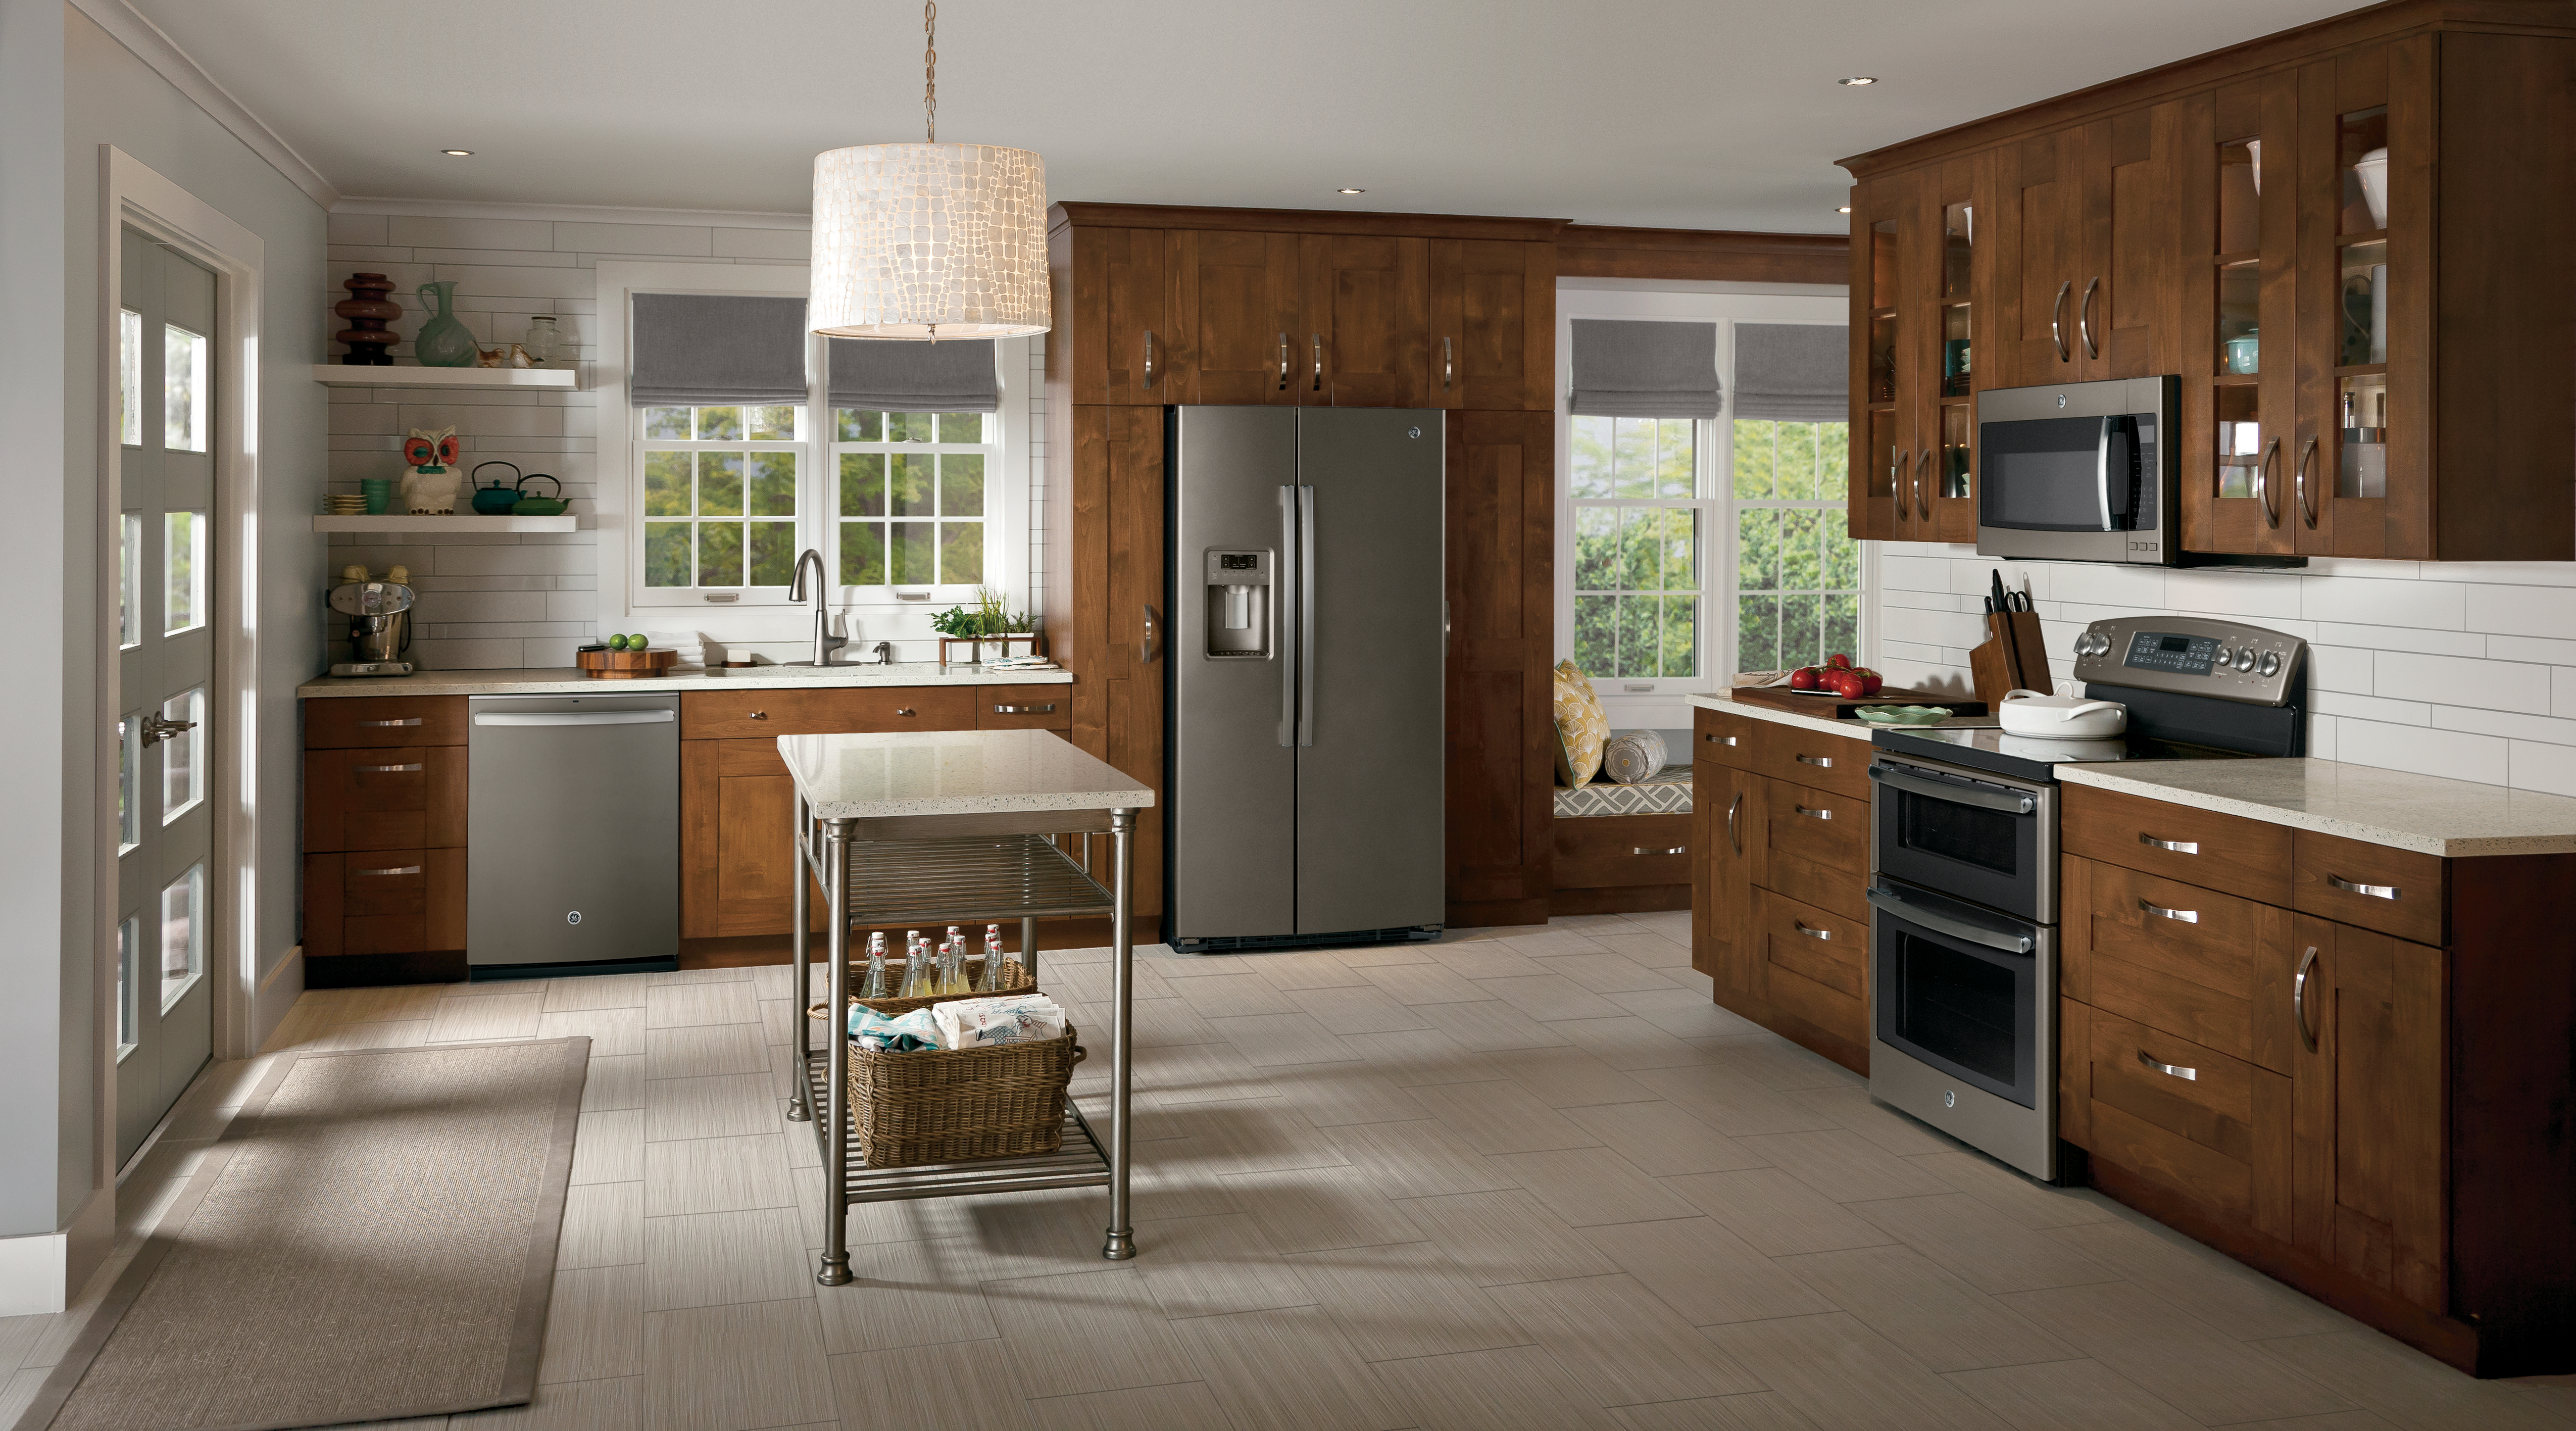 Uncategorized Slate Kitchen Appliances sleek and chic ge expands popular slate finish to more appliances appliances